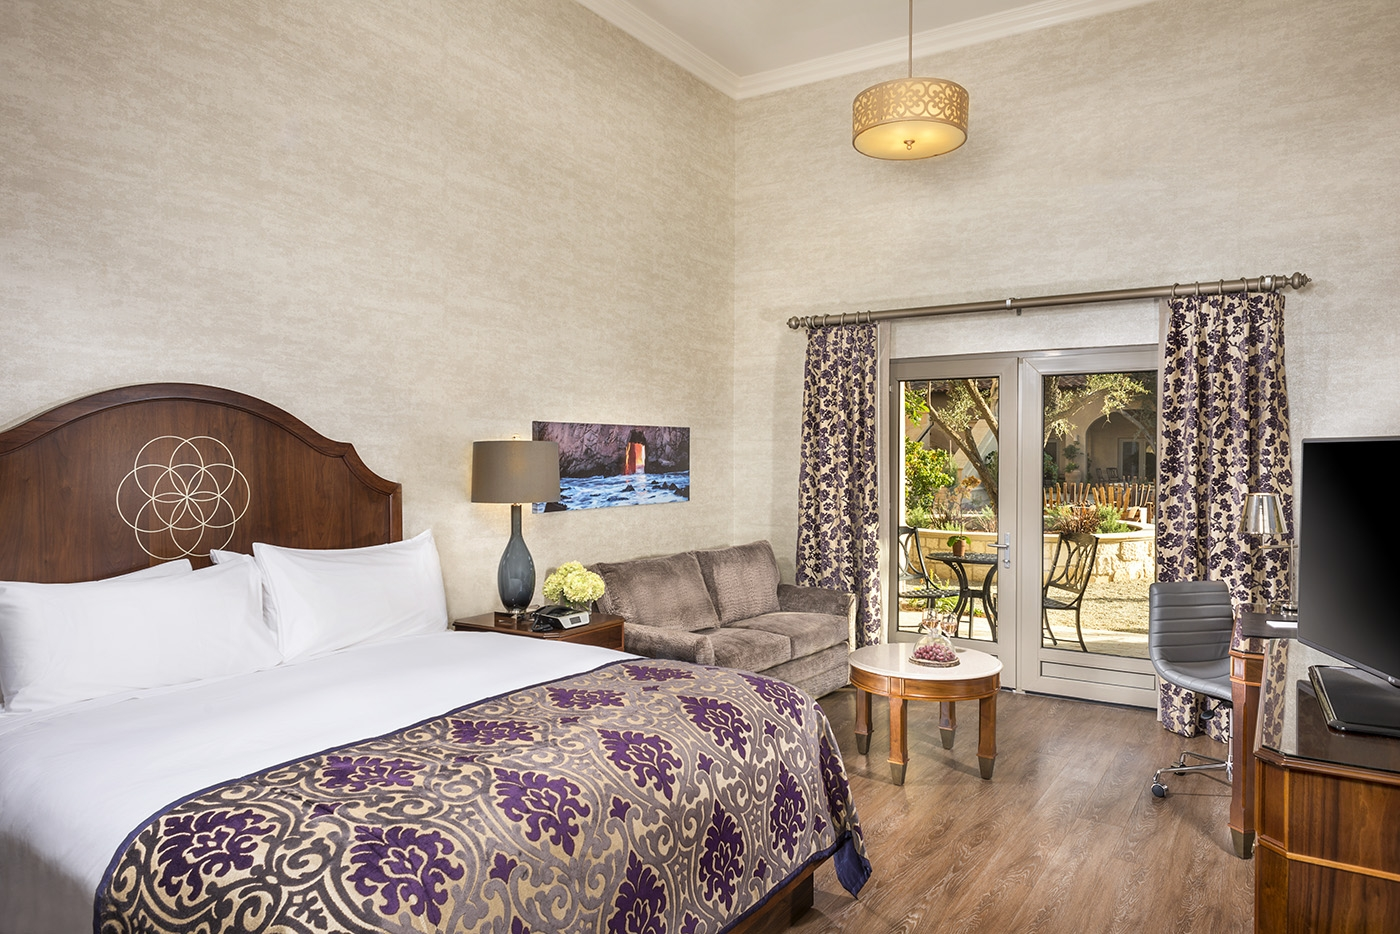 King room with terrace at Allegretto Vineyard Resort in Paso Rob